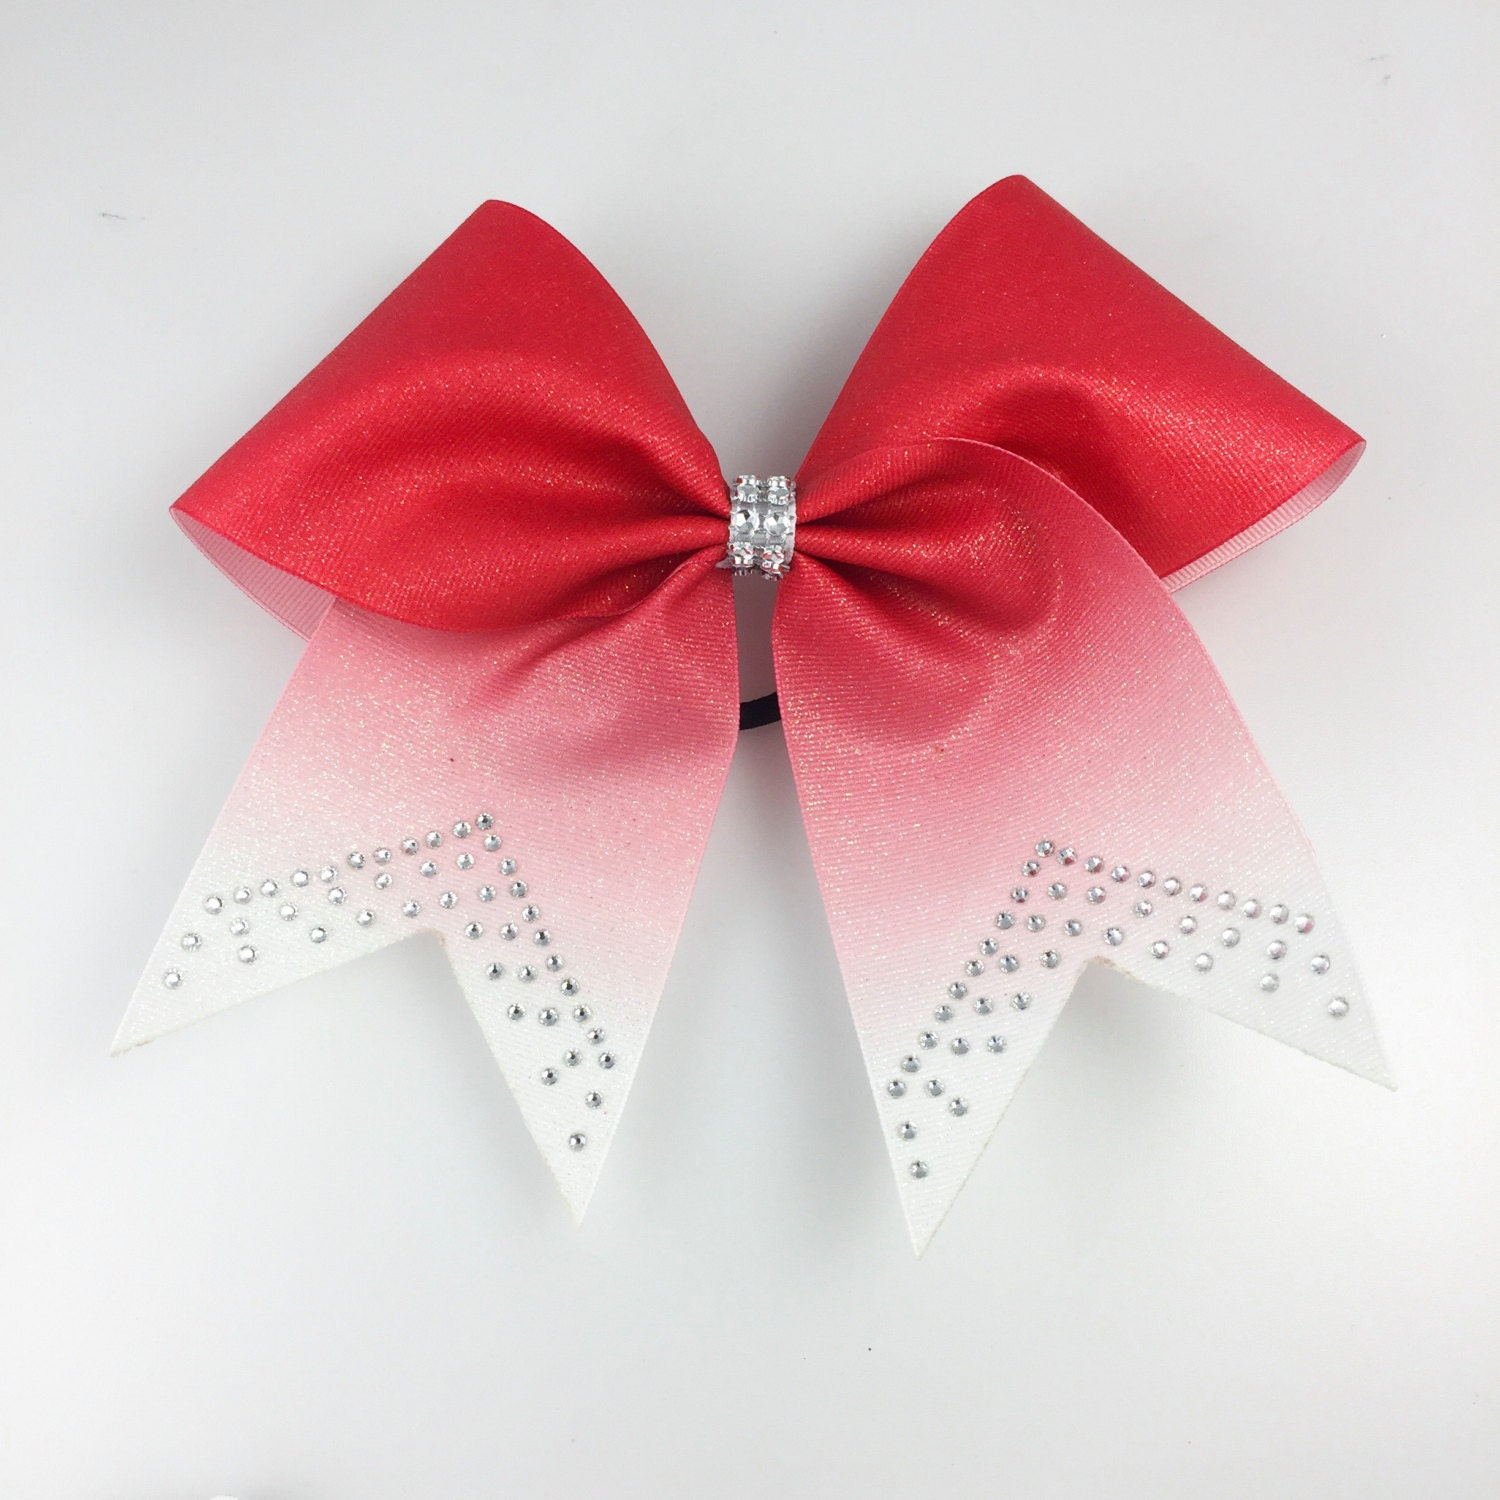 Red Glitter Ombre Cheer Bow Cheer Bows Red Cheer Bows